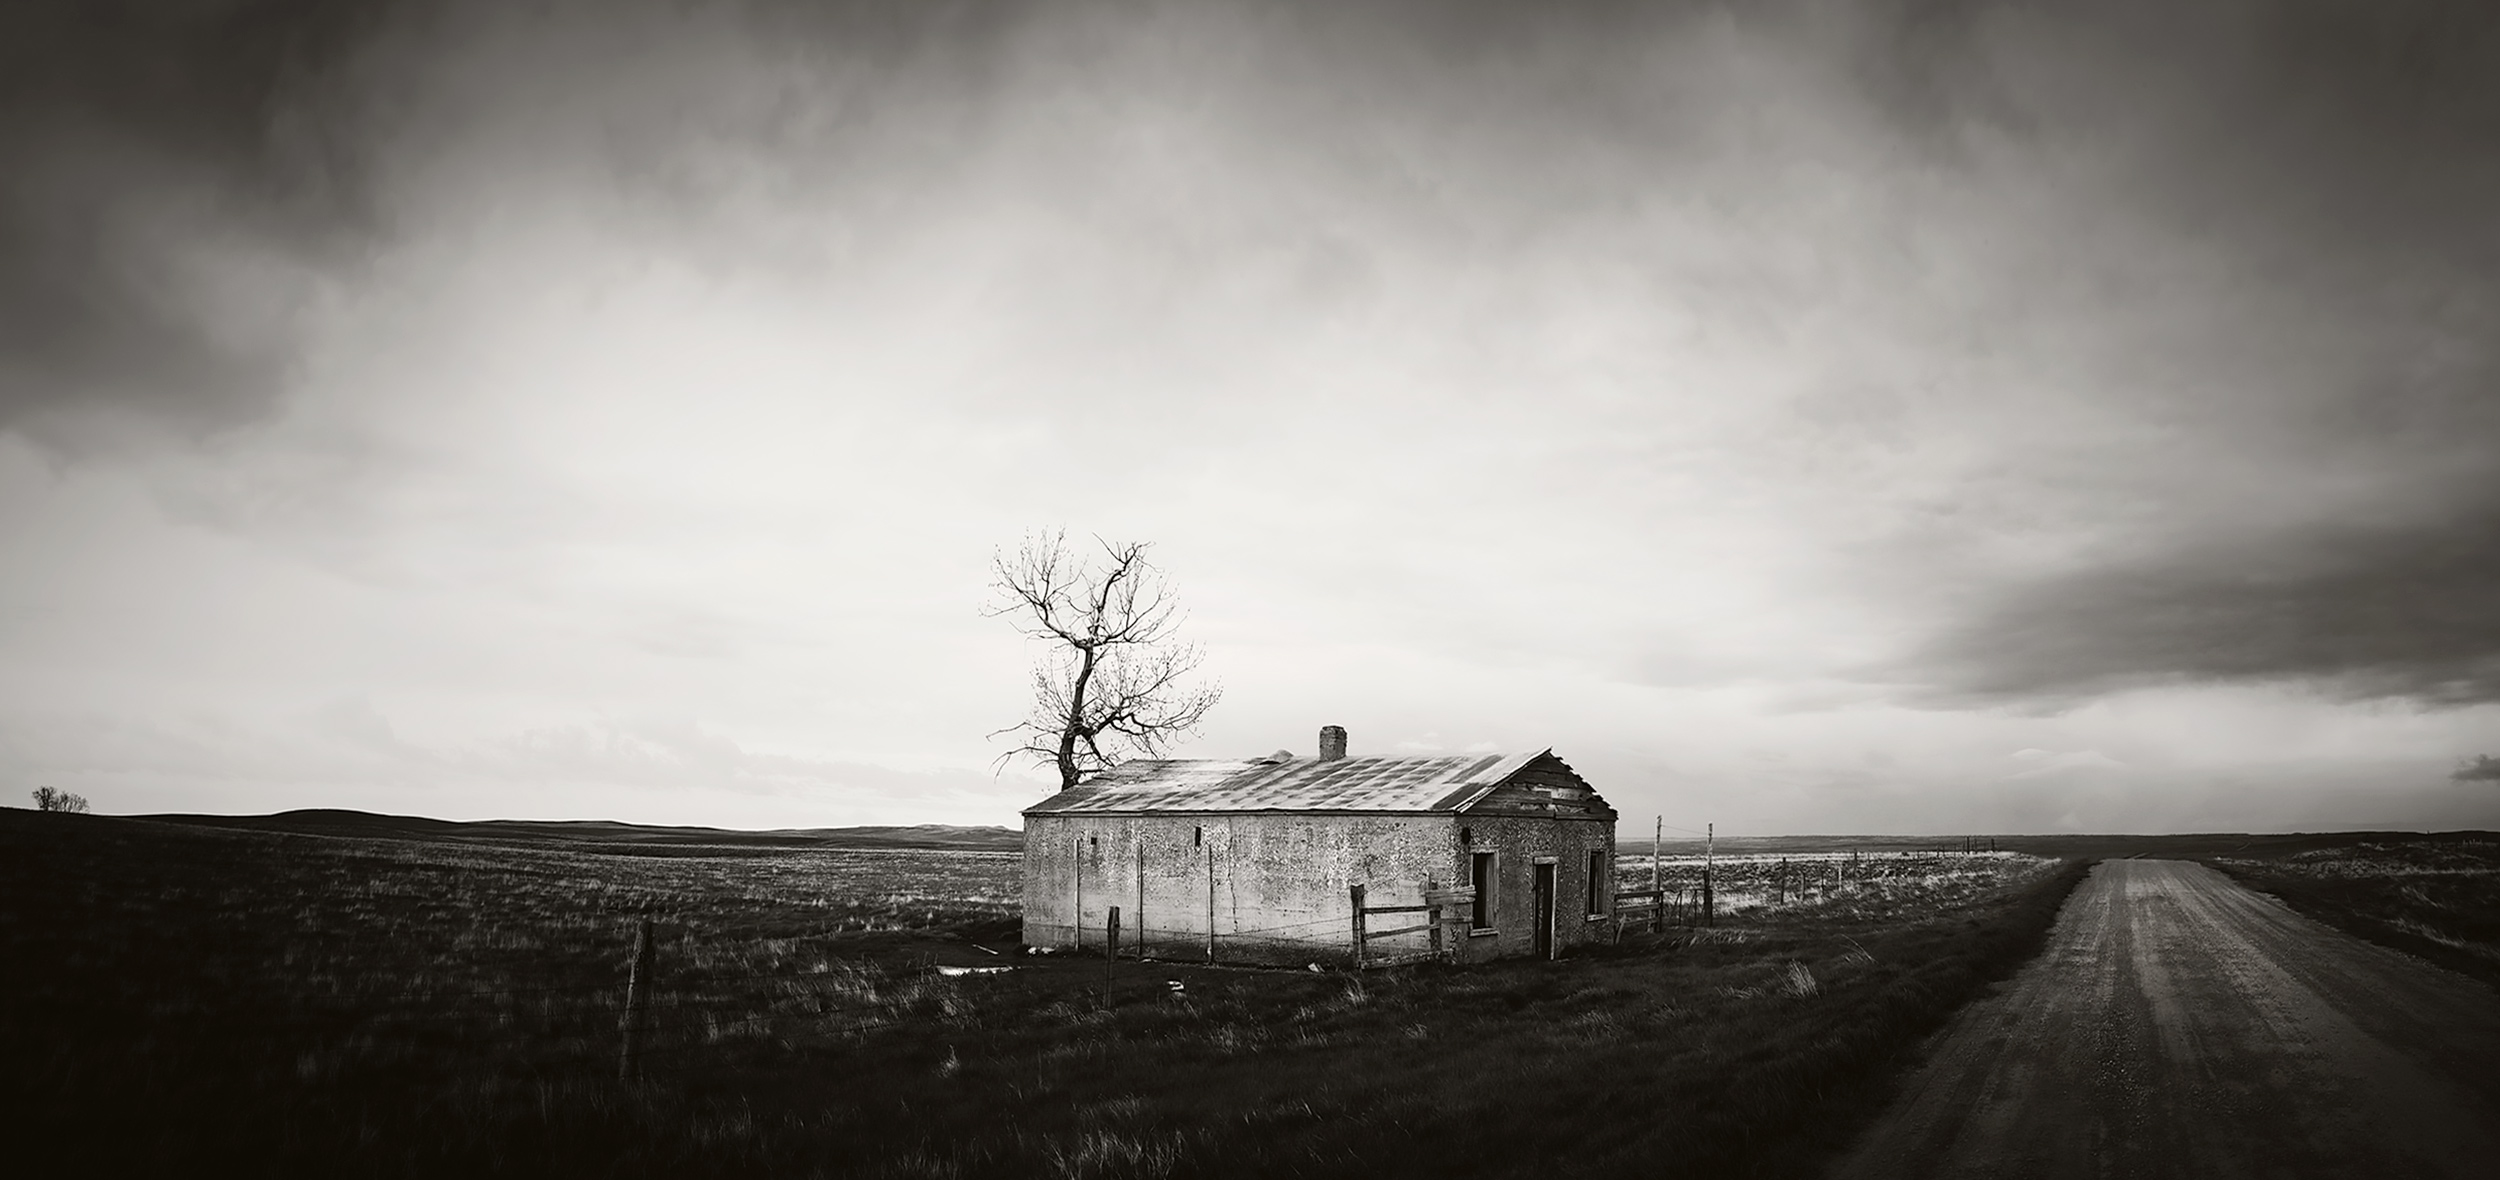 Black and white image of a lone homestead in Central Montana